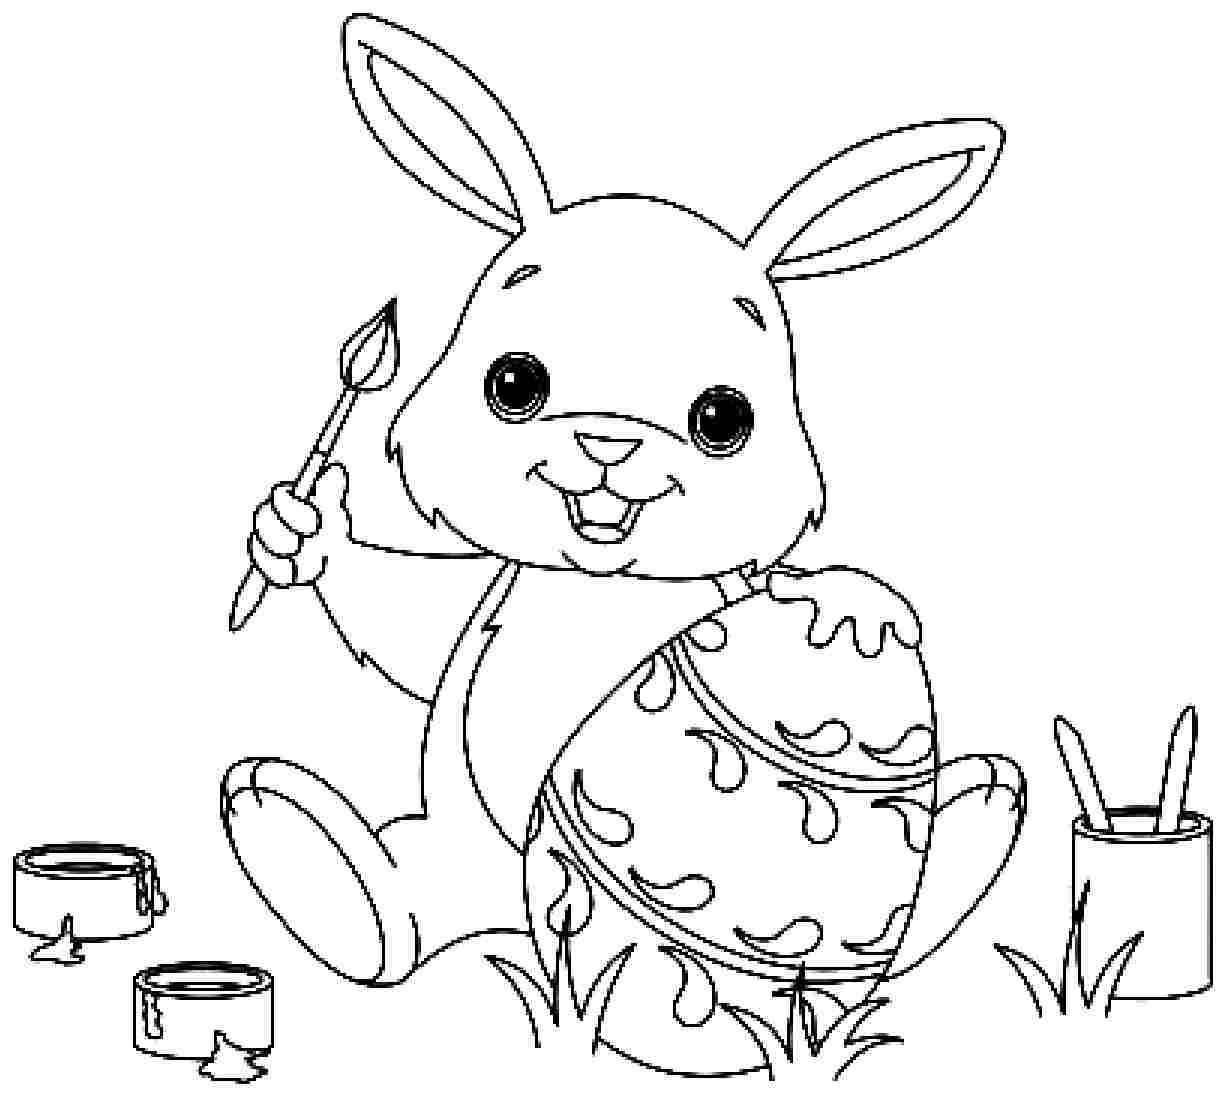 rabbit images for colouring rabbit to color for kids rabbit kids coloring pages for images rabbit colouring